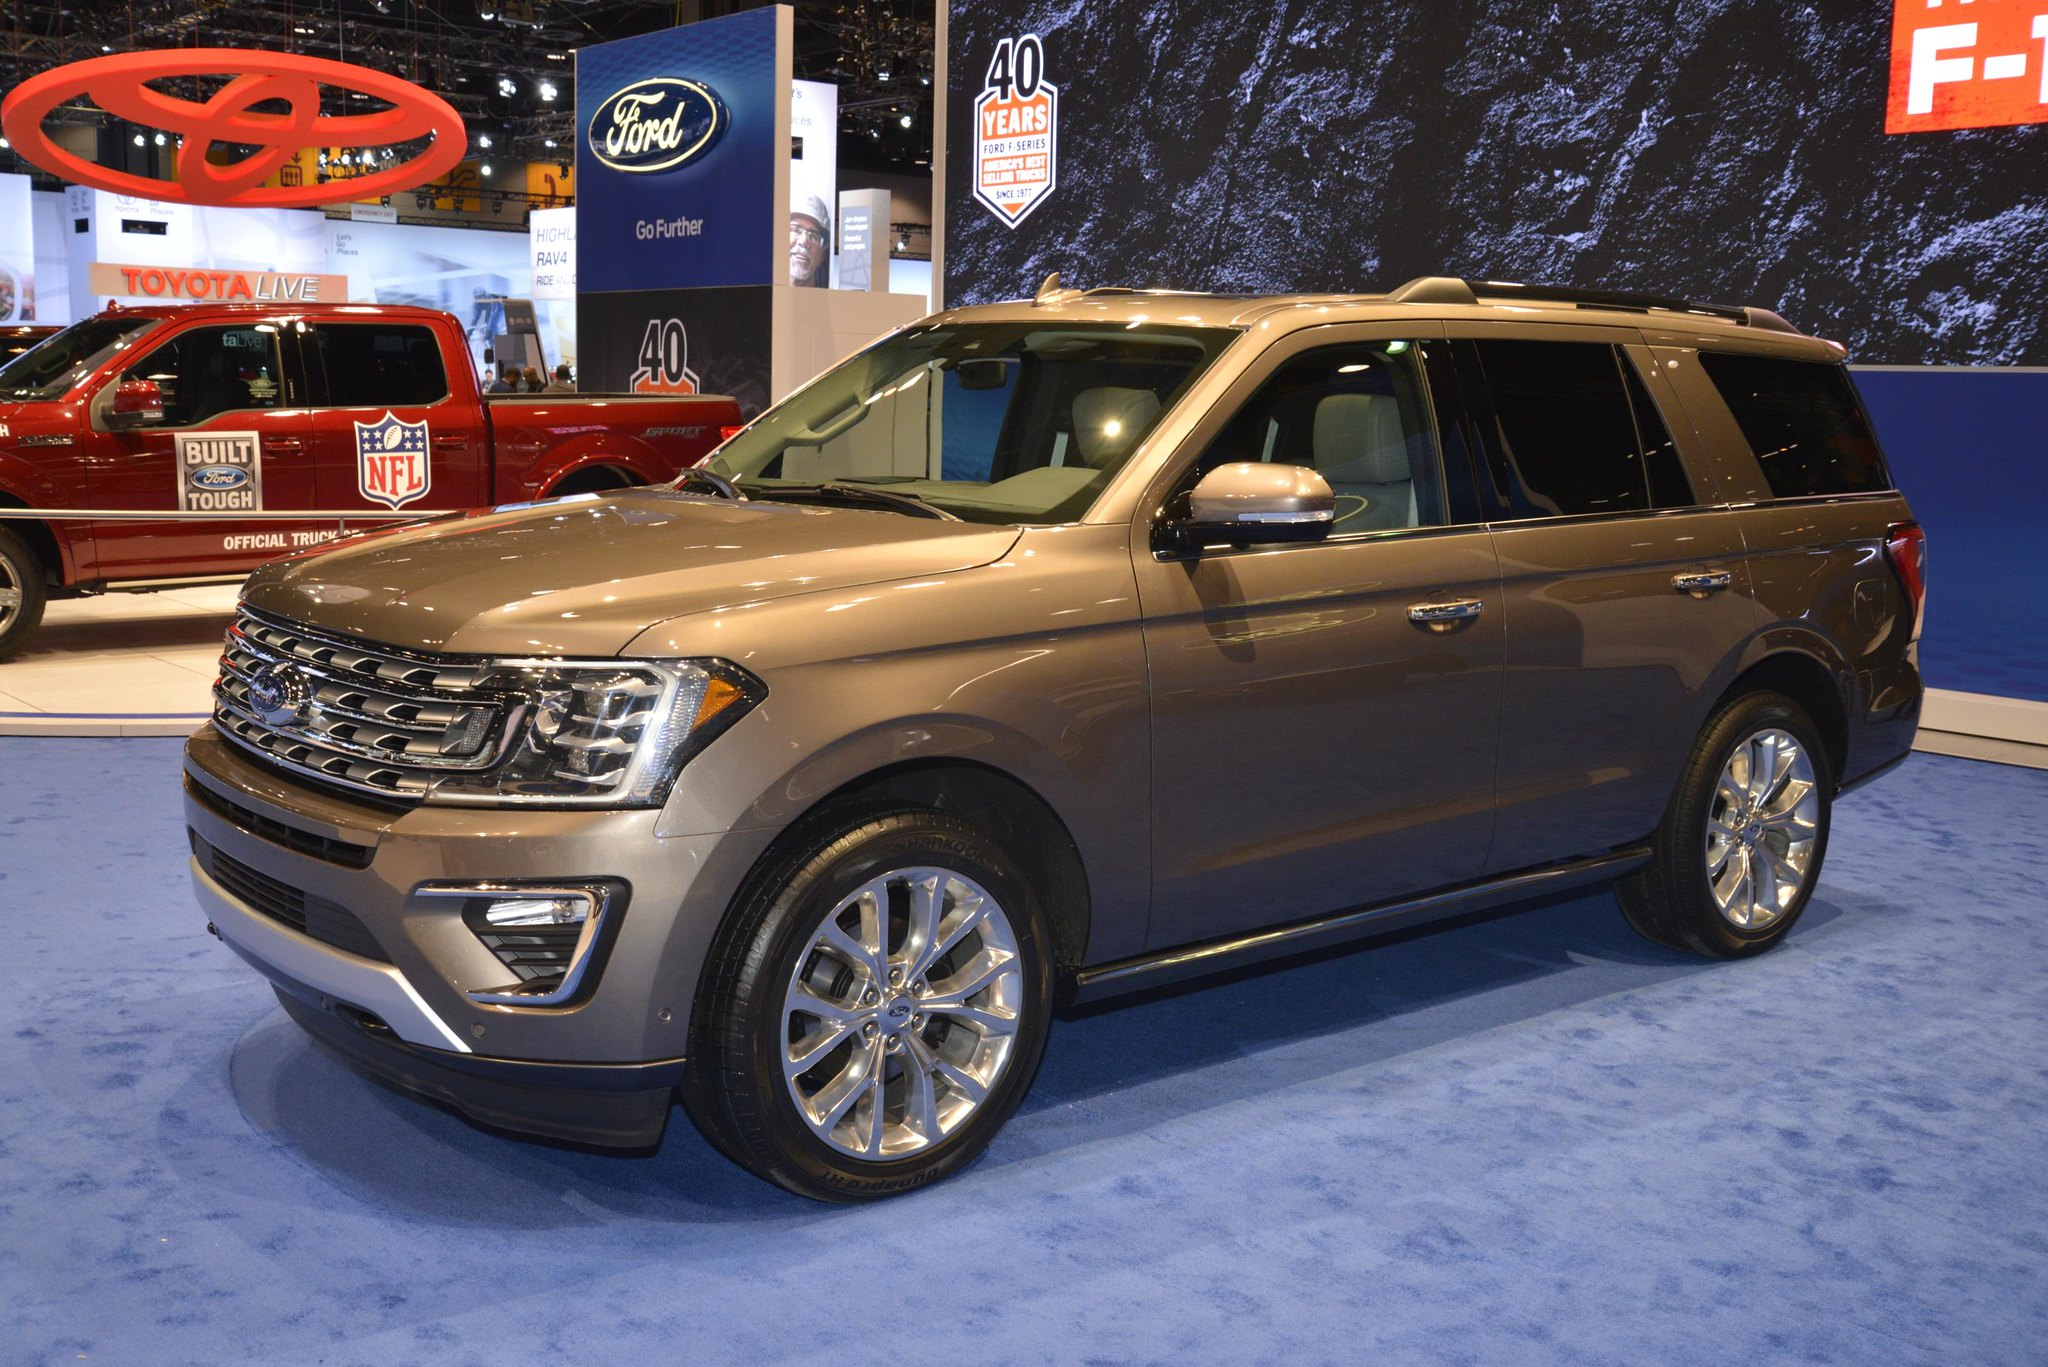 2018 Ford Expedition live photos: 2017 Chicago Auto Show